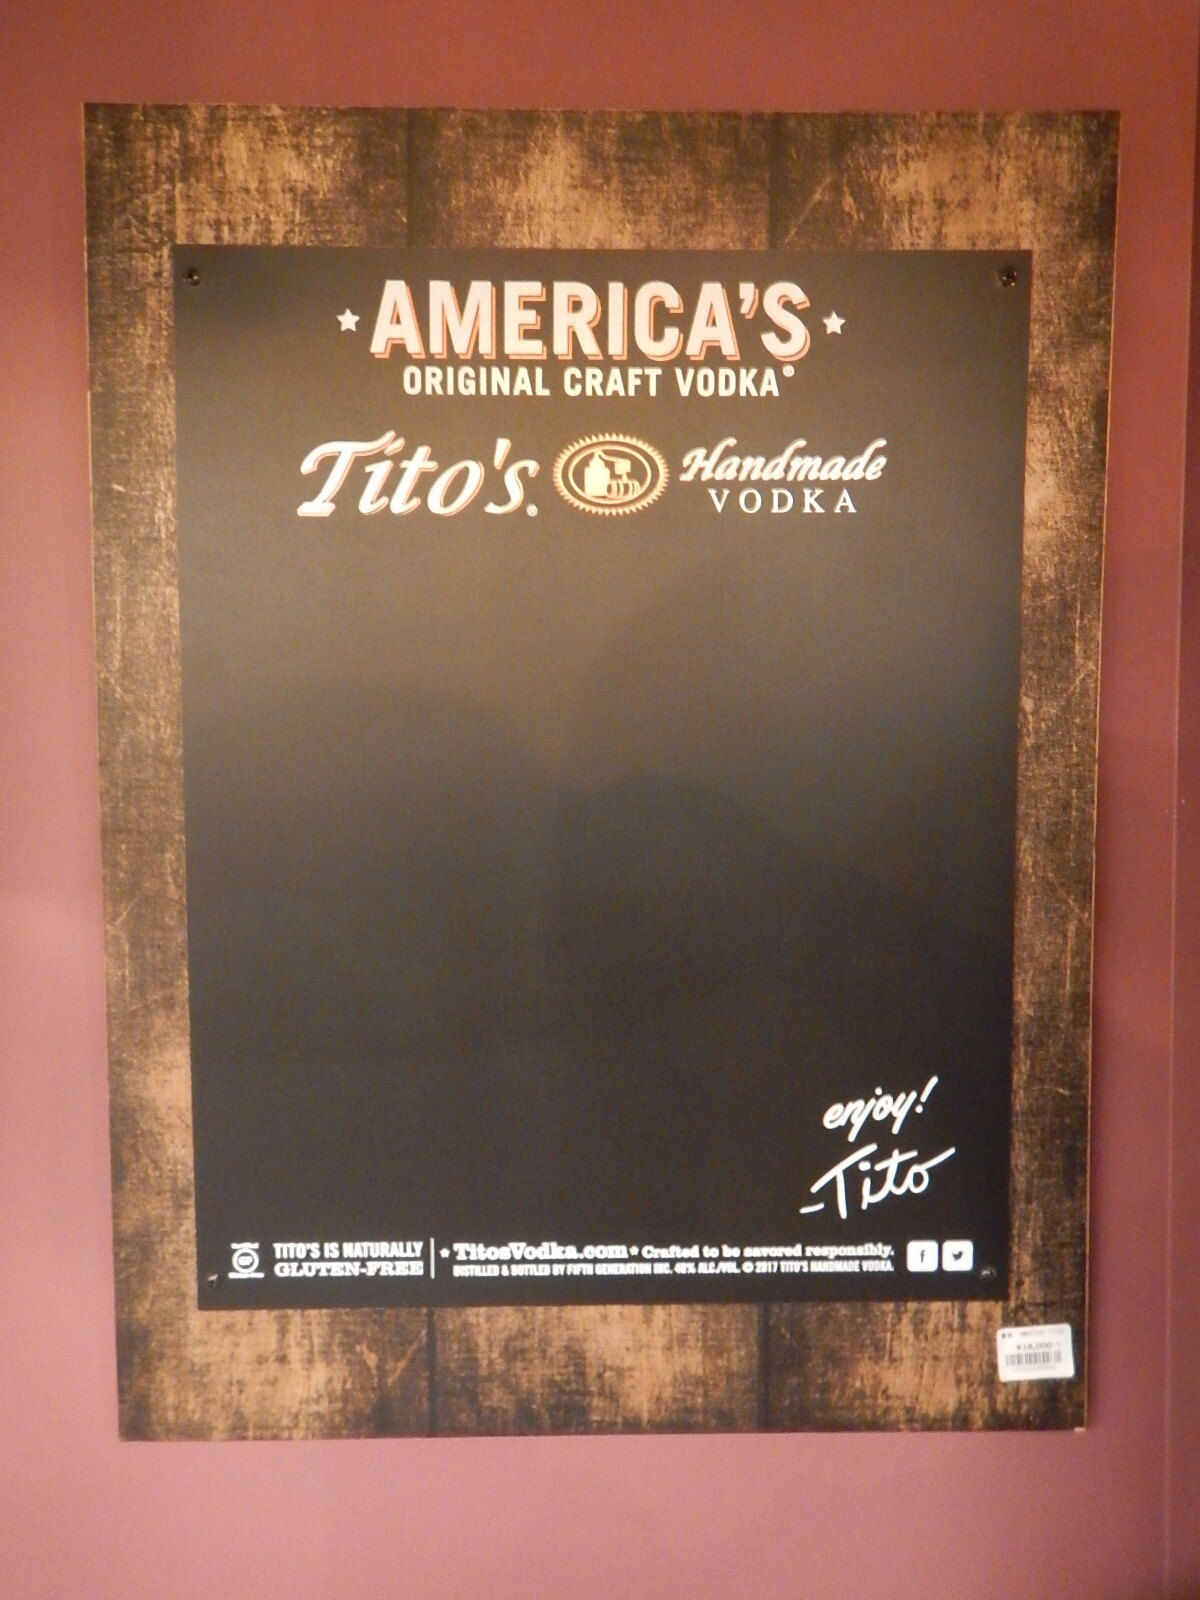 品番0031 看板 AMERICA'S ORIGINAL CRAFT VODKA Tito's Handmade Vodka 011